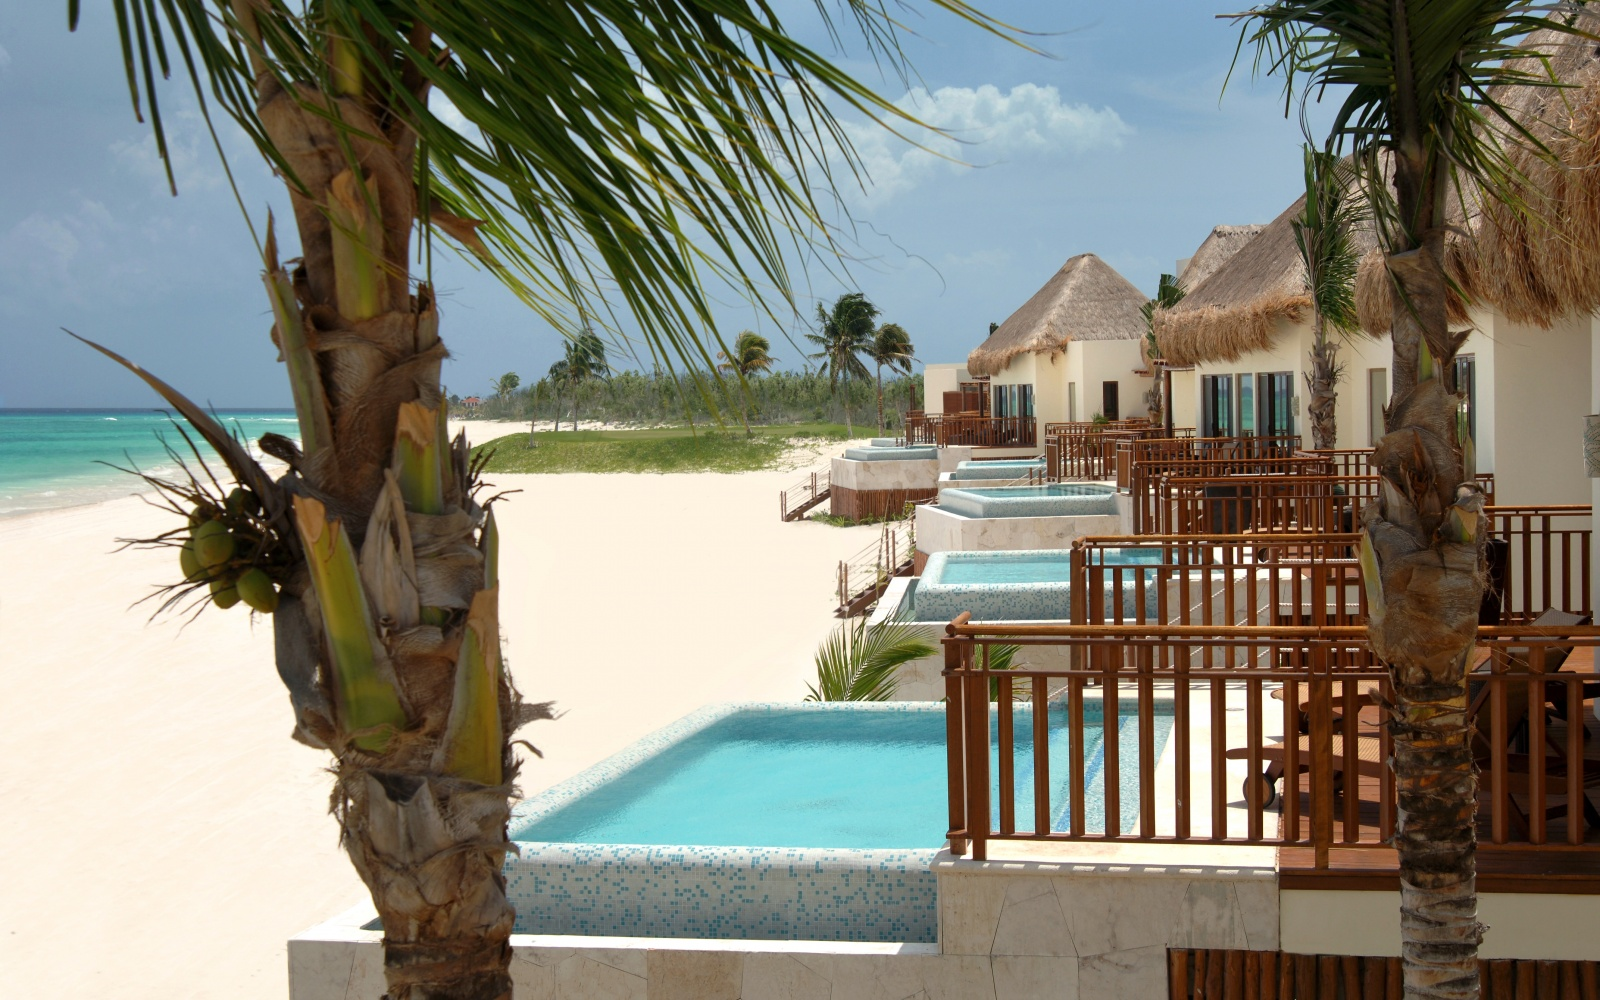 guest villas on the beach at Fairmont Mayakoba, Playa del Carmen